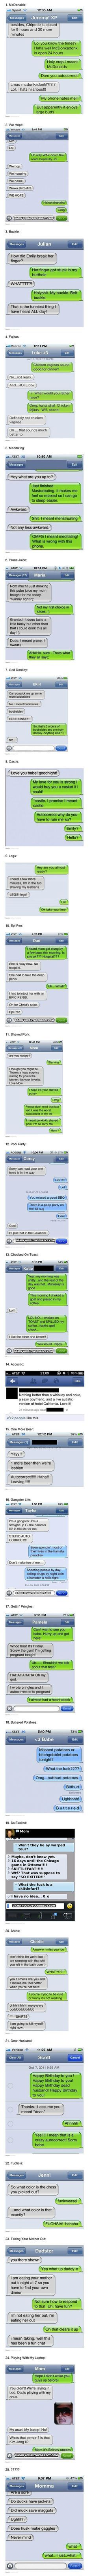 humor Great collection of funny autocorrect text message fails.these are the funniest texts iv seen et!Great collection of funny autocorrect text message fails.these are the funniest texts iv seen et! Funny Text Messages Fails, Text Message Fails, Funny Fails, Funny Texts, Funny Jokes, Hilarious, Humor Texts, Awkward Texts, Drunk Texts